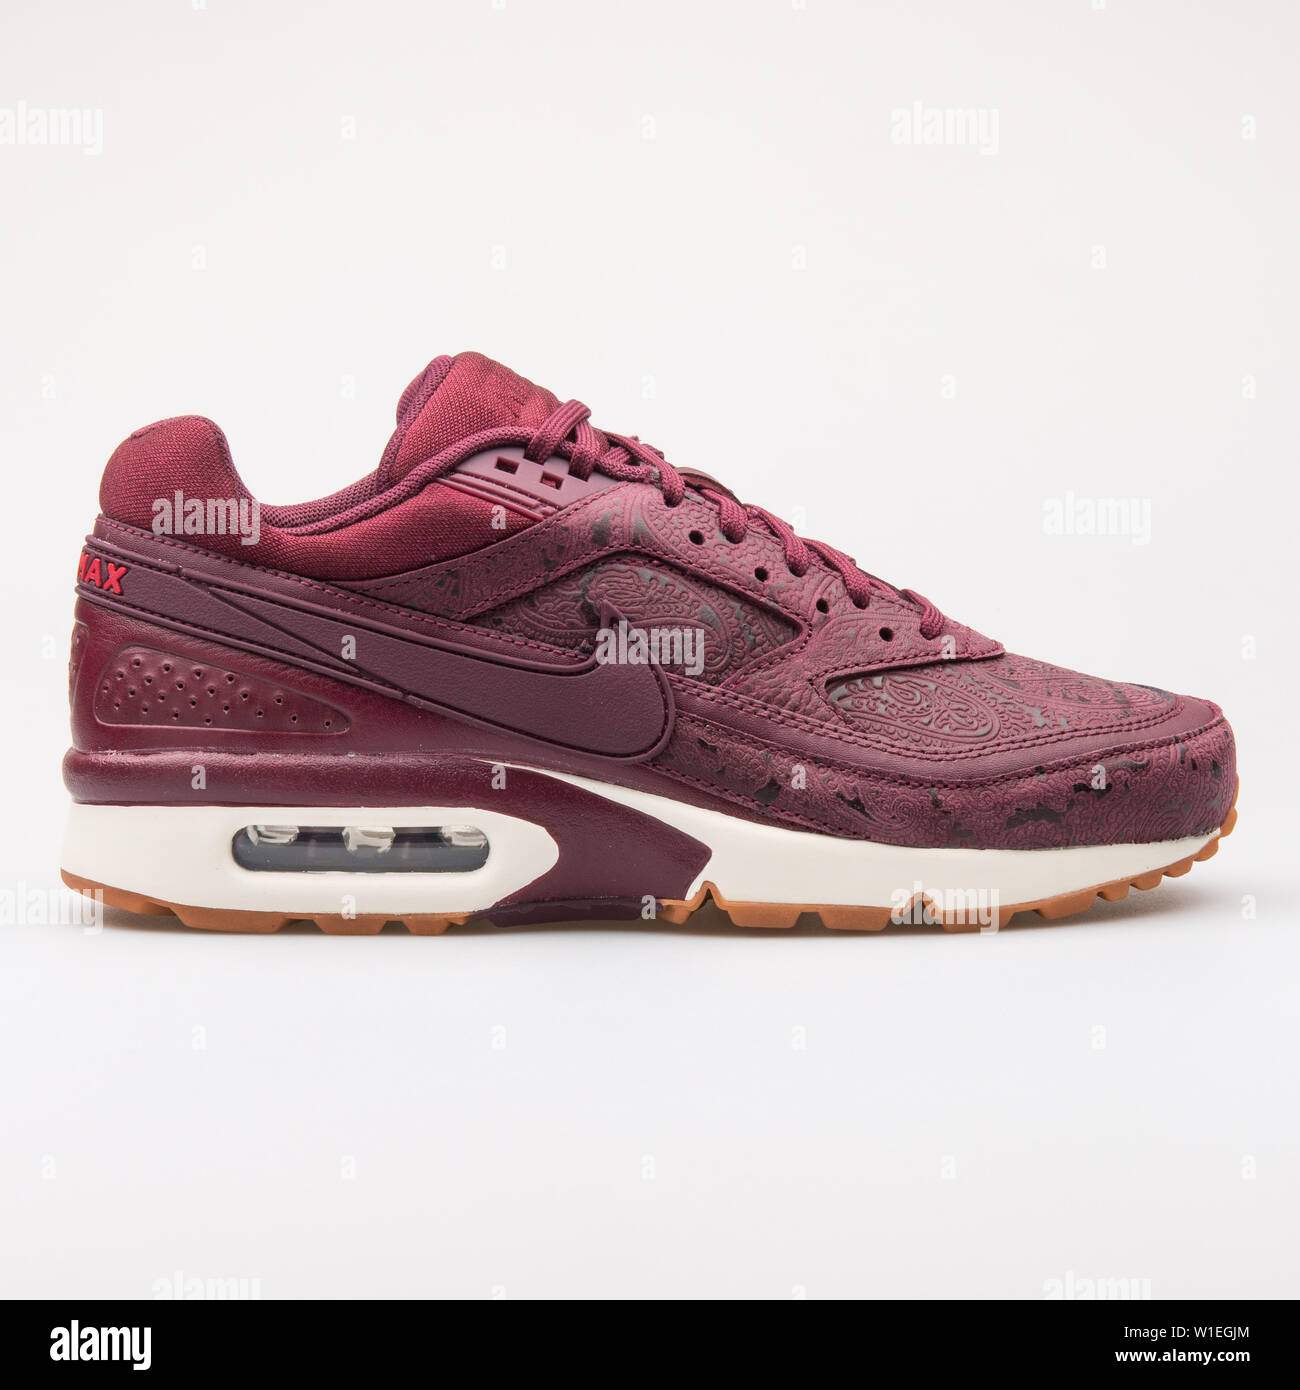 air max bw bordeaux